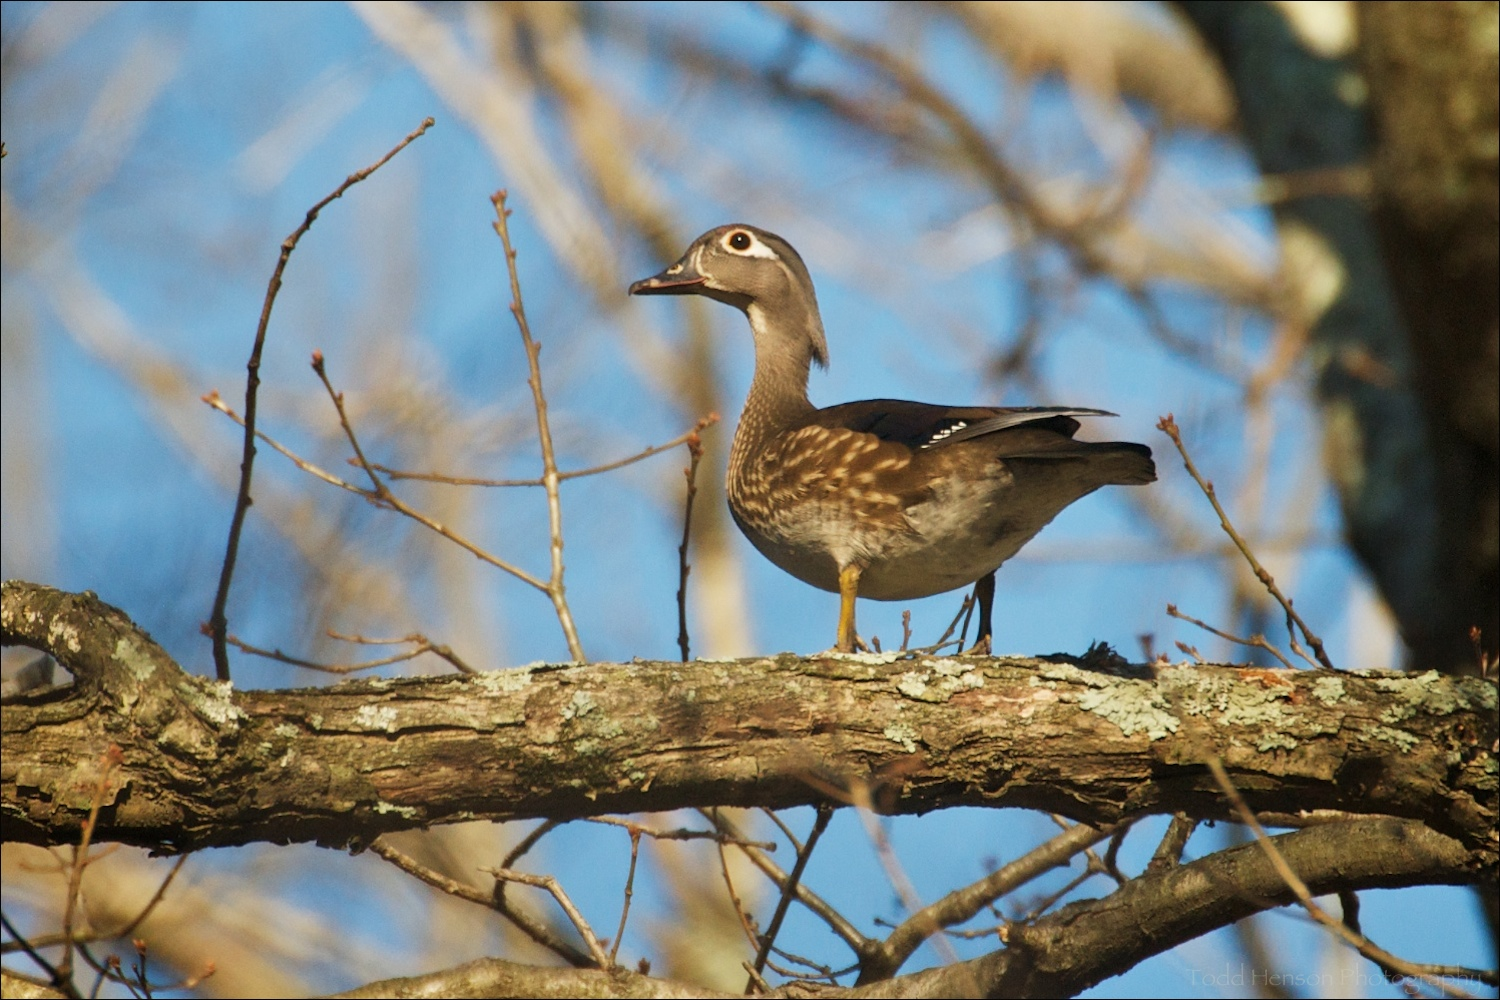 Female Wood Duck watching me from a tree branch.